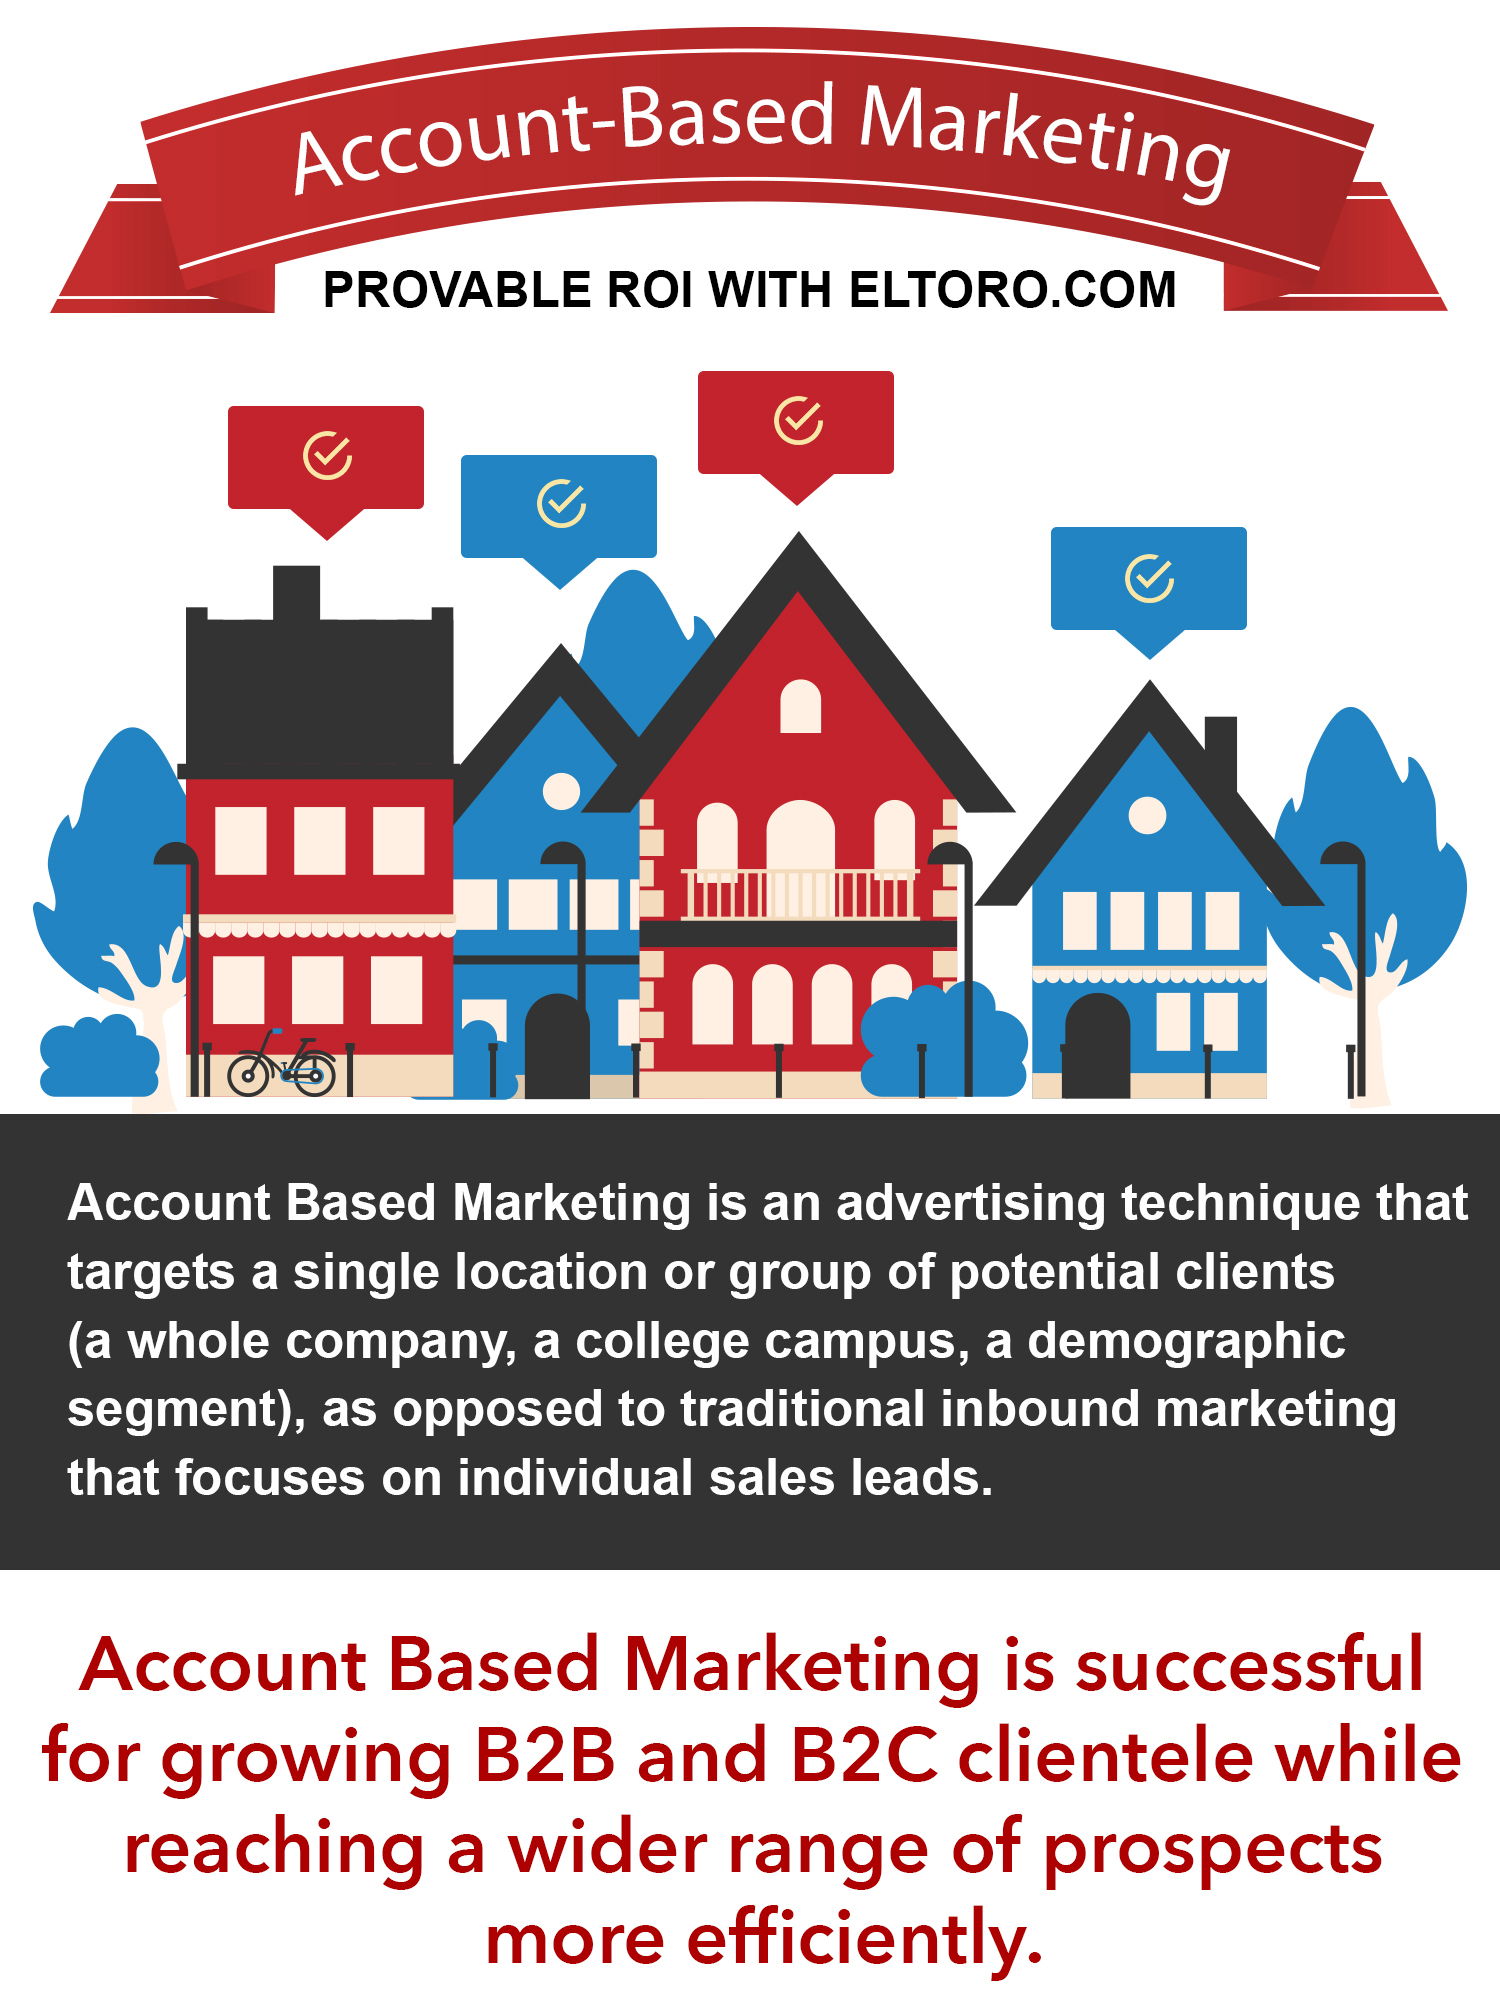 El_Toro_Account-Based-Marketing